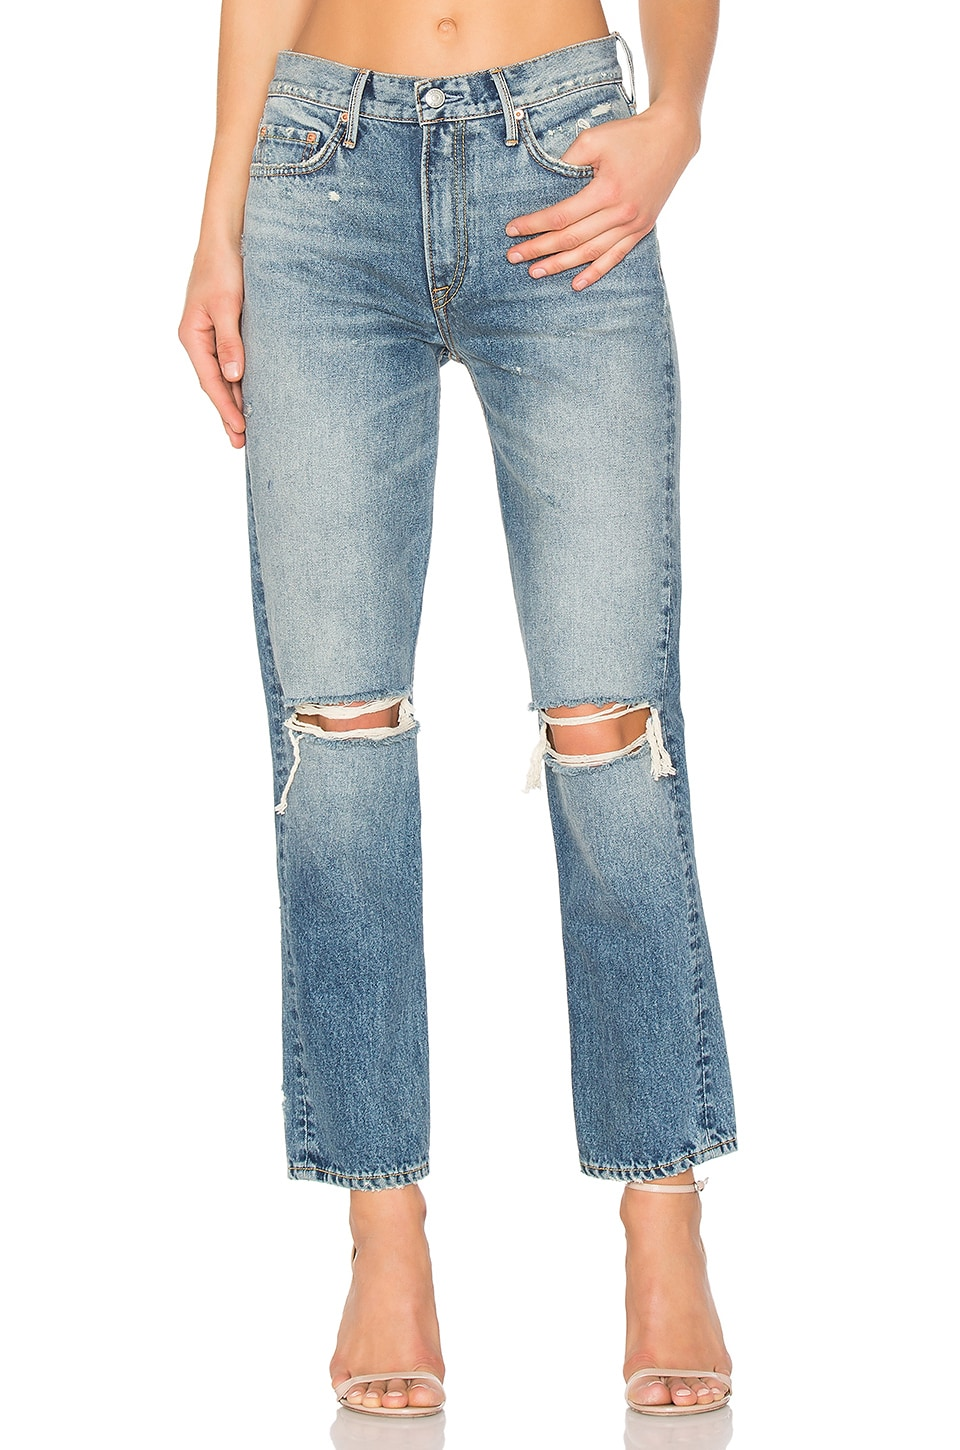 x REVOLVE Jane Straight Jean by Grlfrnd